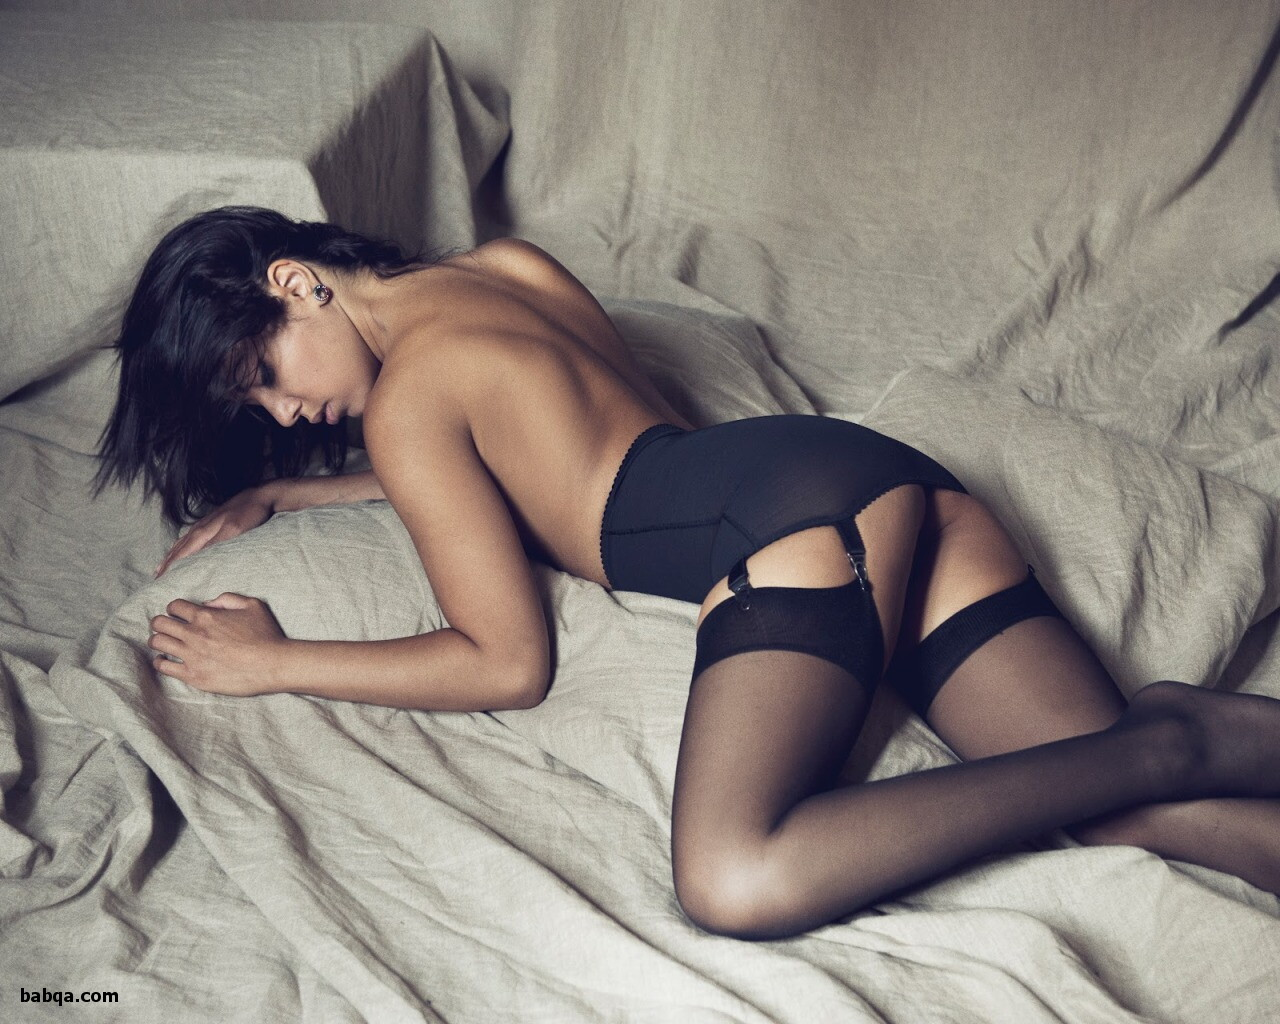 xxx lingerie photos and black dress with stockings